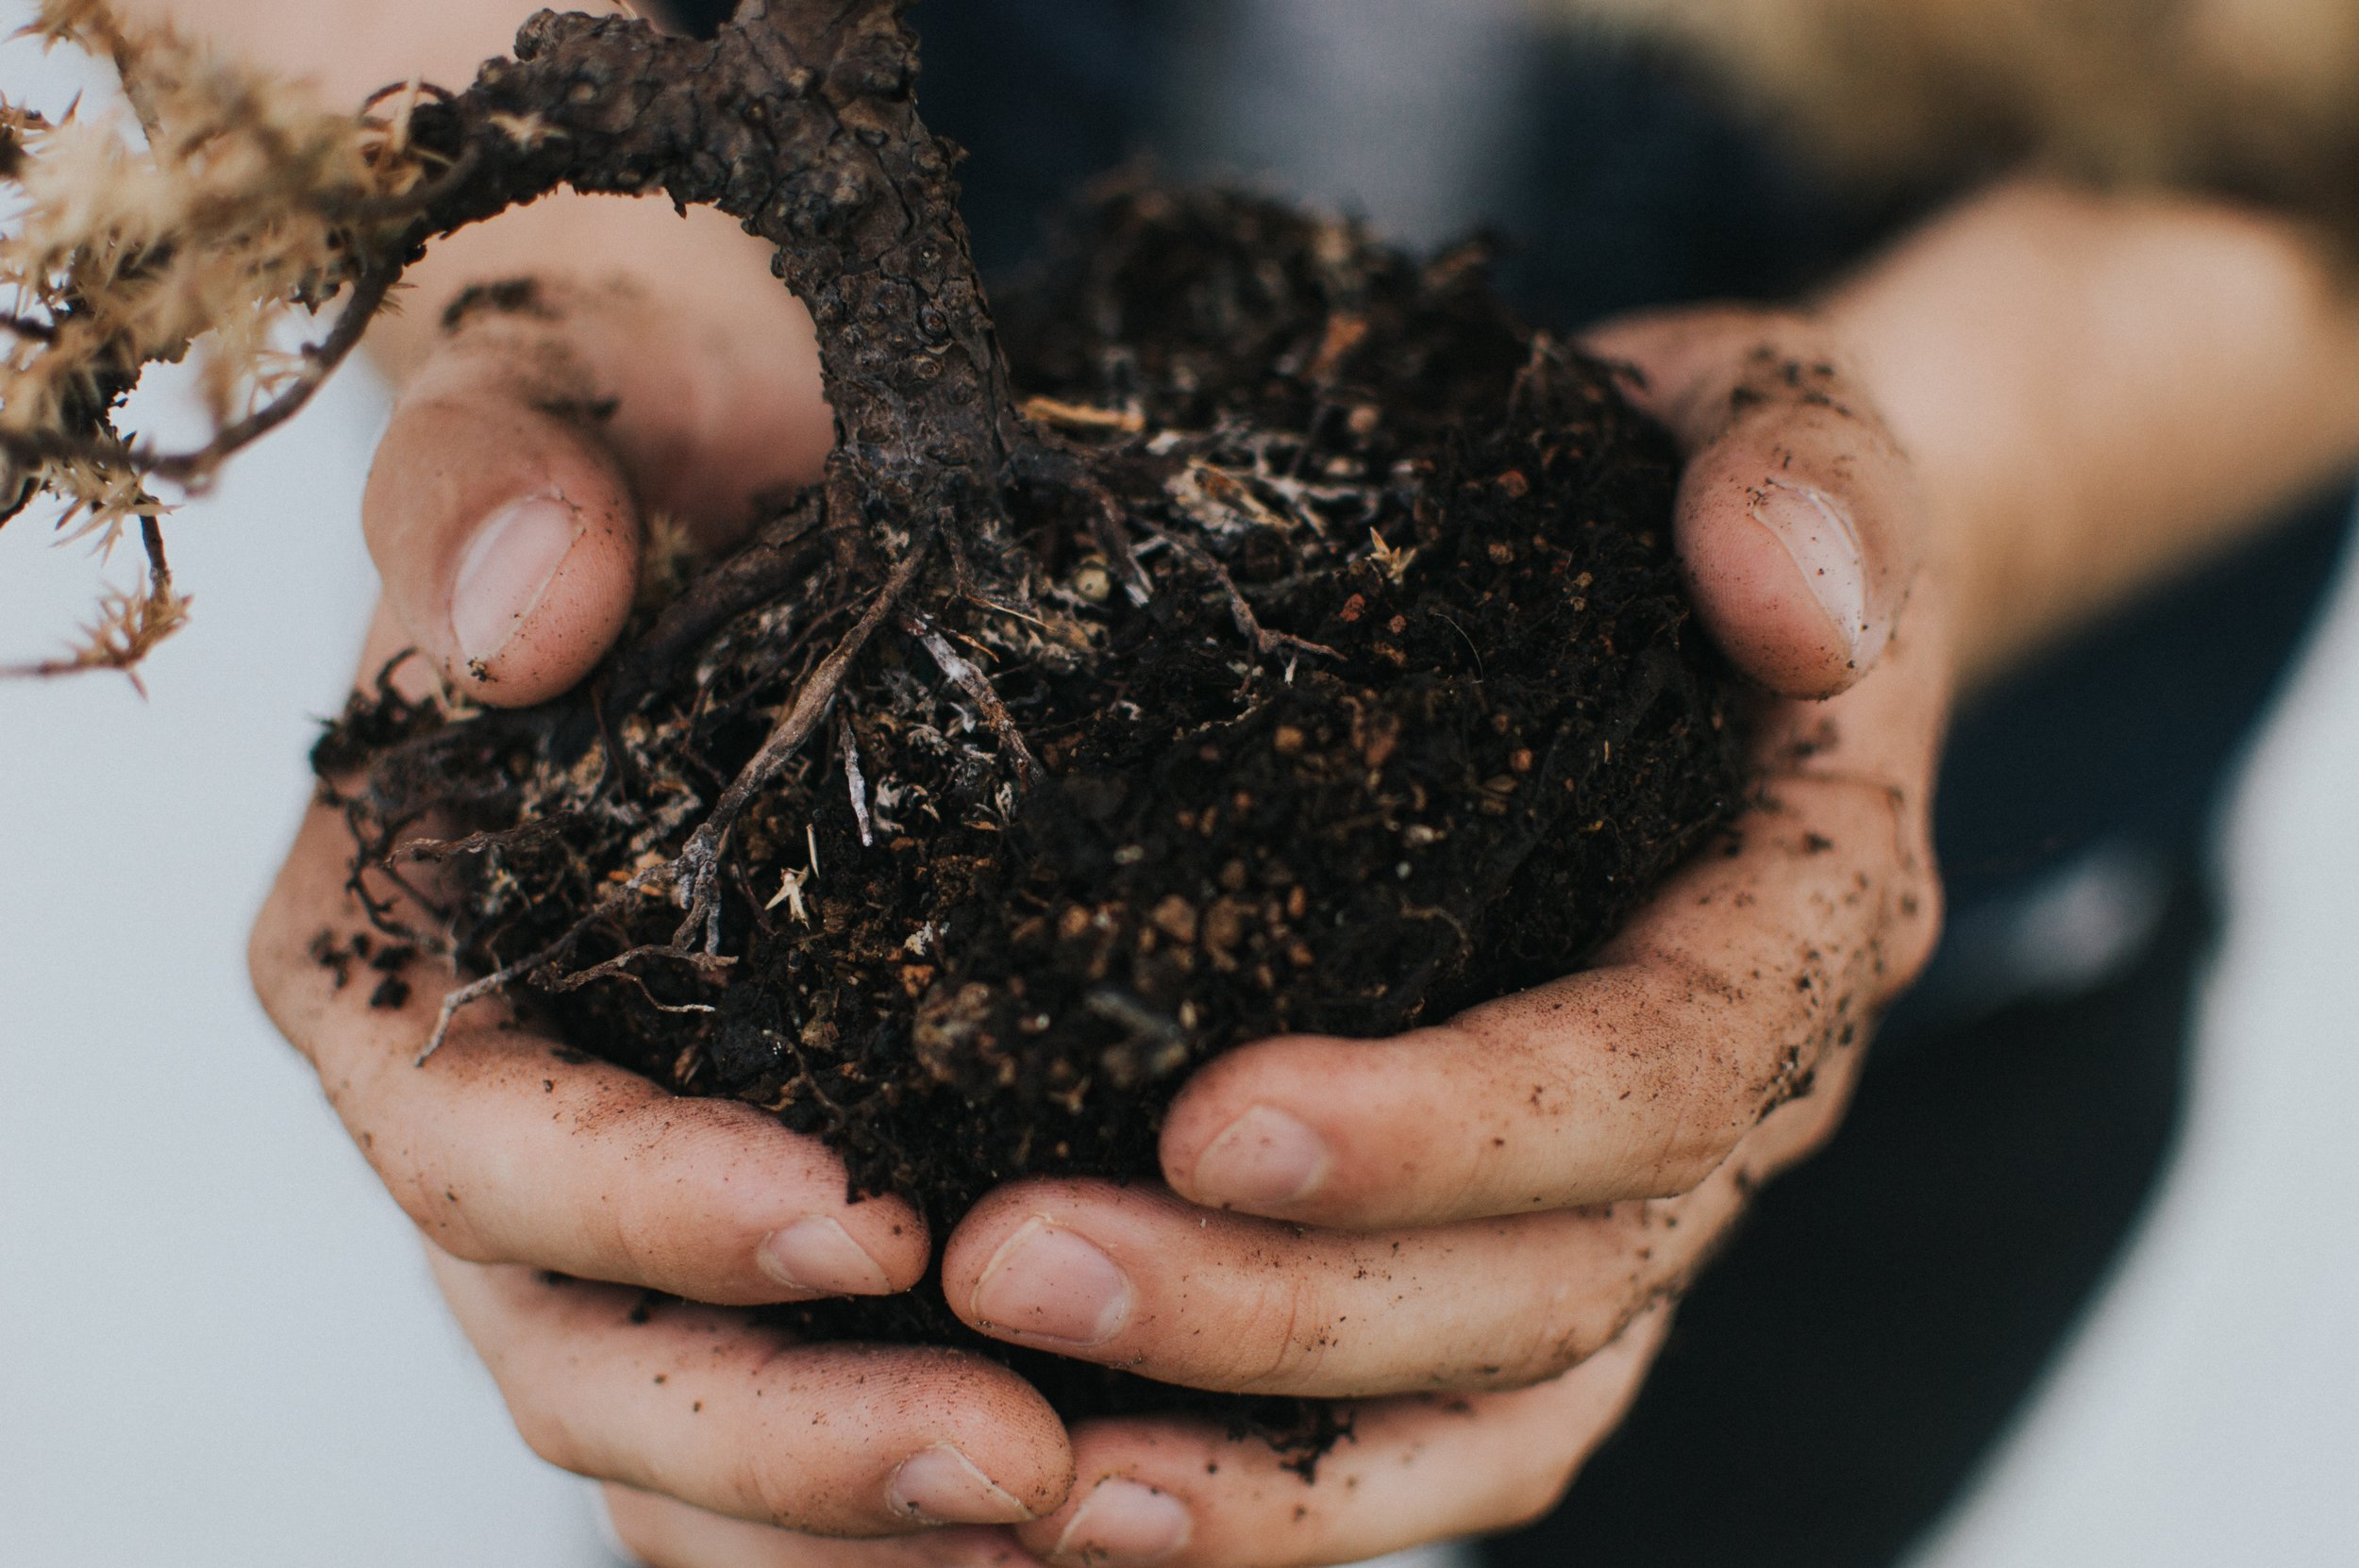 But about dirty hands on earth<br>Messy but persistent hope in a world that needs your skills and gifts?